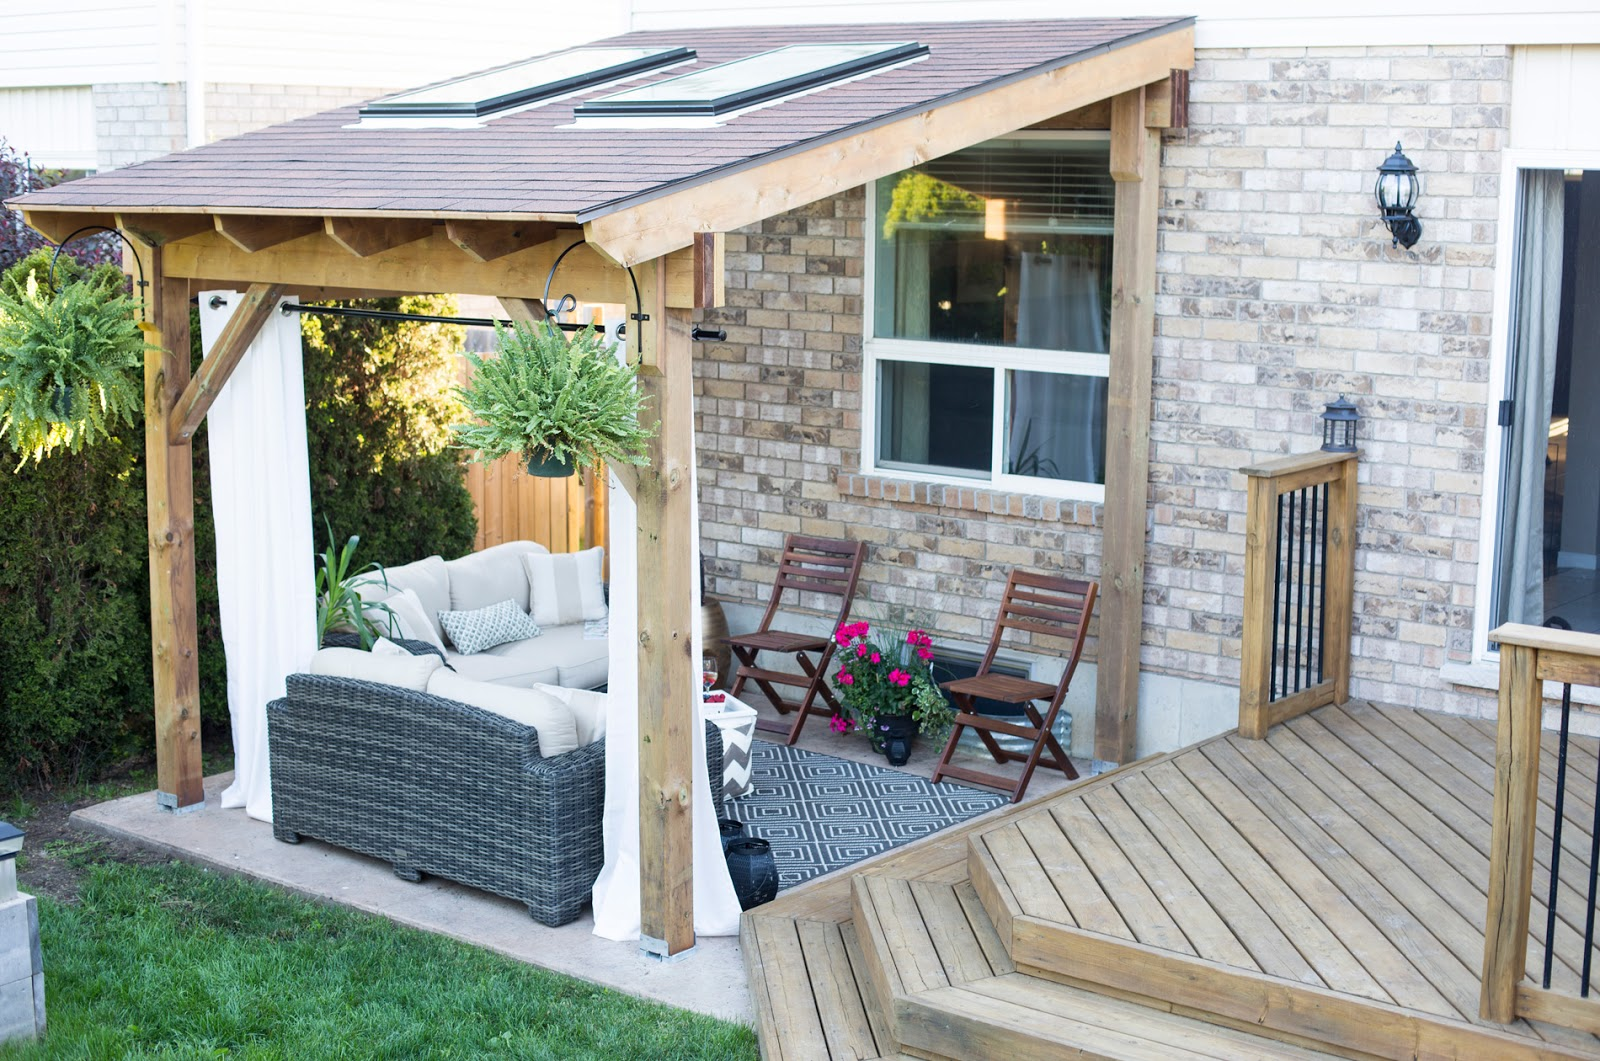 Spacious Covered Patio Designs 47 More Than Ideas Scpd Hausratversicherungkosten Info